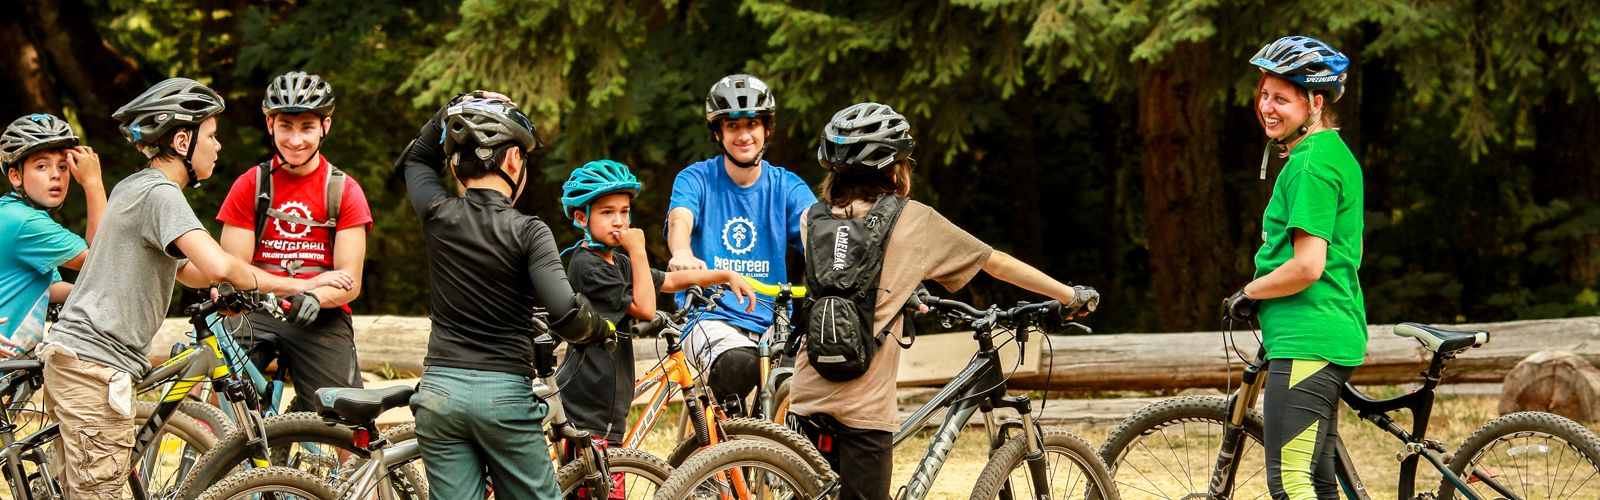 be701d132f8 Looking to improve your skills? We can help! Find all our adult and kids  mtb classes here.